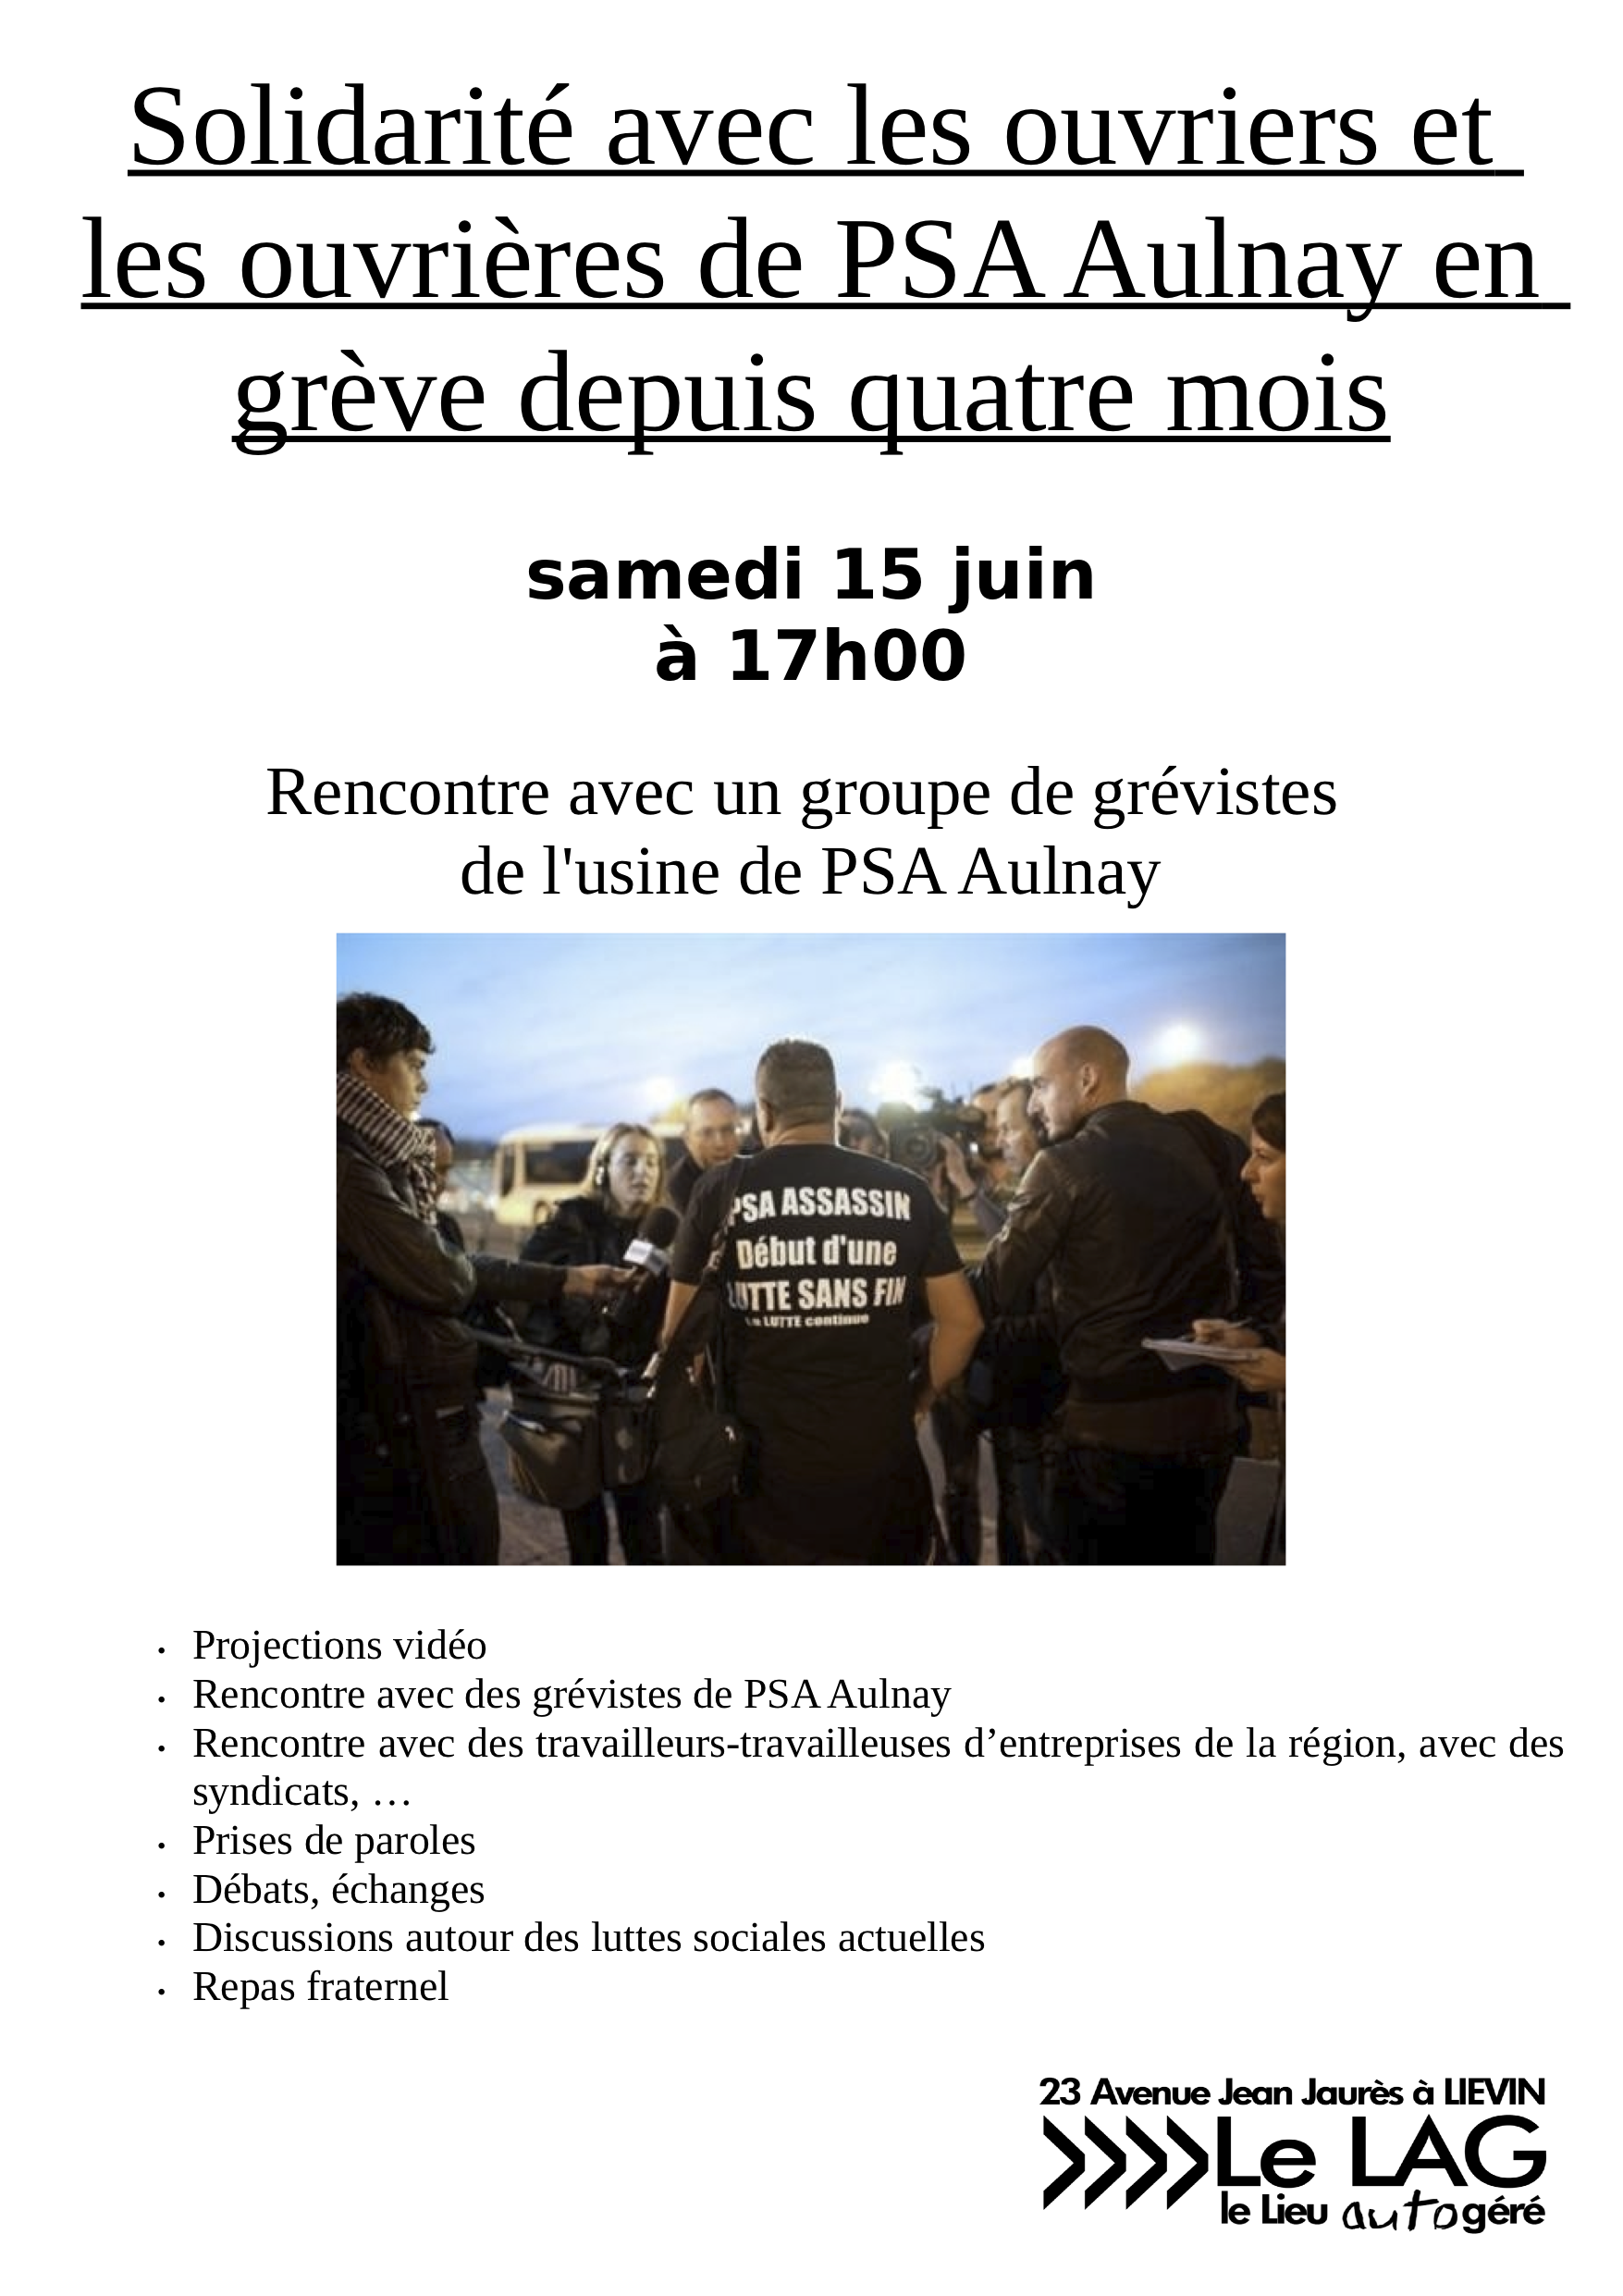 20130615-AfficheA3-PSAAulnay